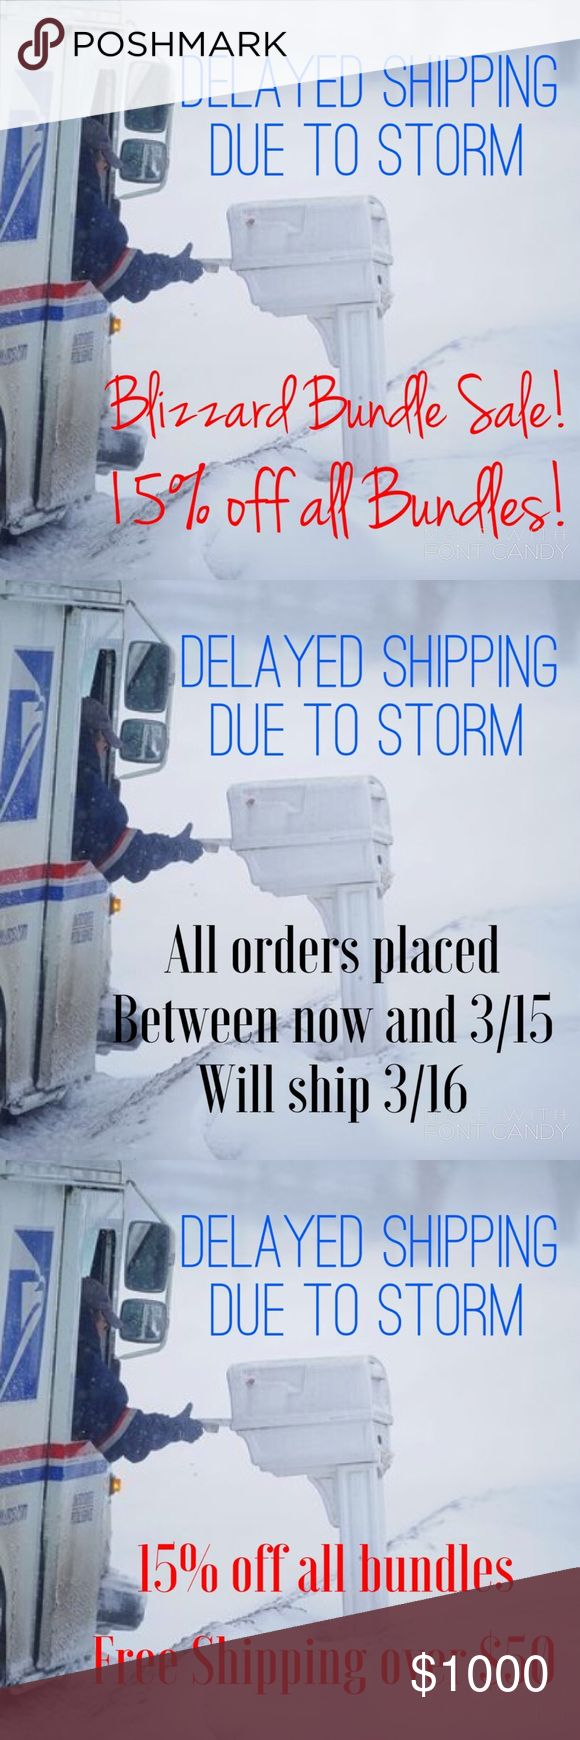 Blizzard Bundle Sale & Delayed Shipping Looks like my area may have some intense weather which will cause a delay in me shipping out orders. So...I thought....let's have a SALE. 15% off all bundles. Free Shipping on orders over $50 (total must be over $50 after Bundle discount) Just create bundle (discount will automatically be calculated, if your total is over $50, click the offer button and offer $7 less than total and I'll accept. All orders ship Thursday 3/16. Other